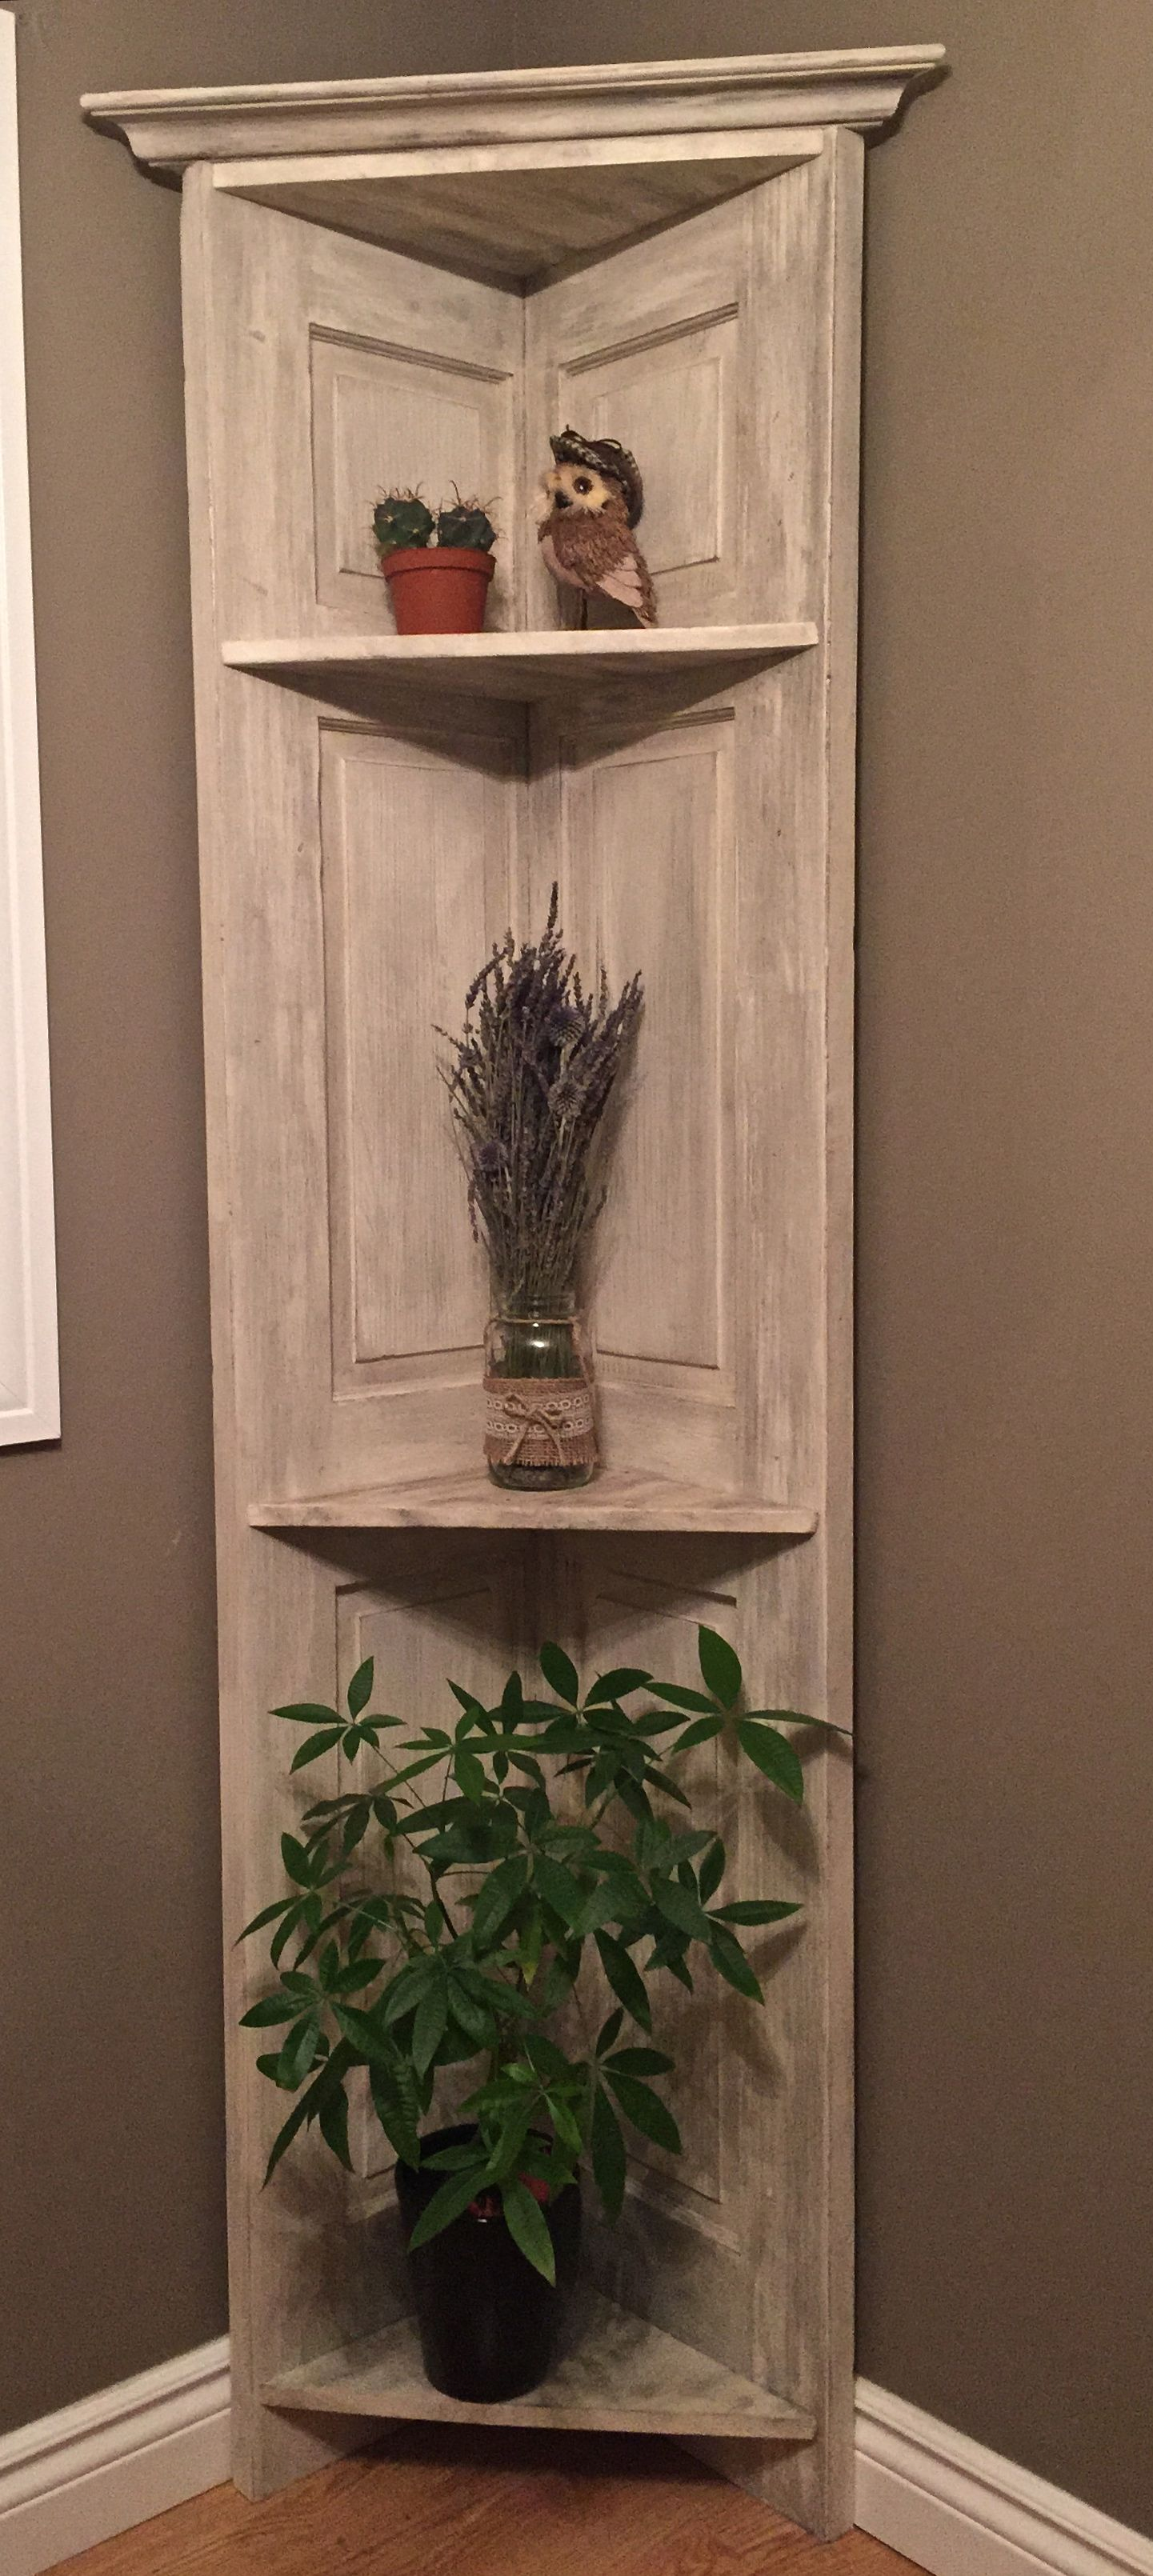 Saved a door from going to the landfill and made it into a corner shelf  using